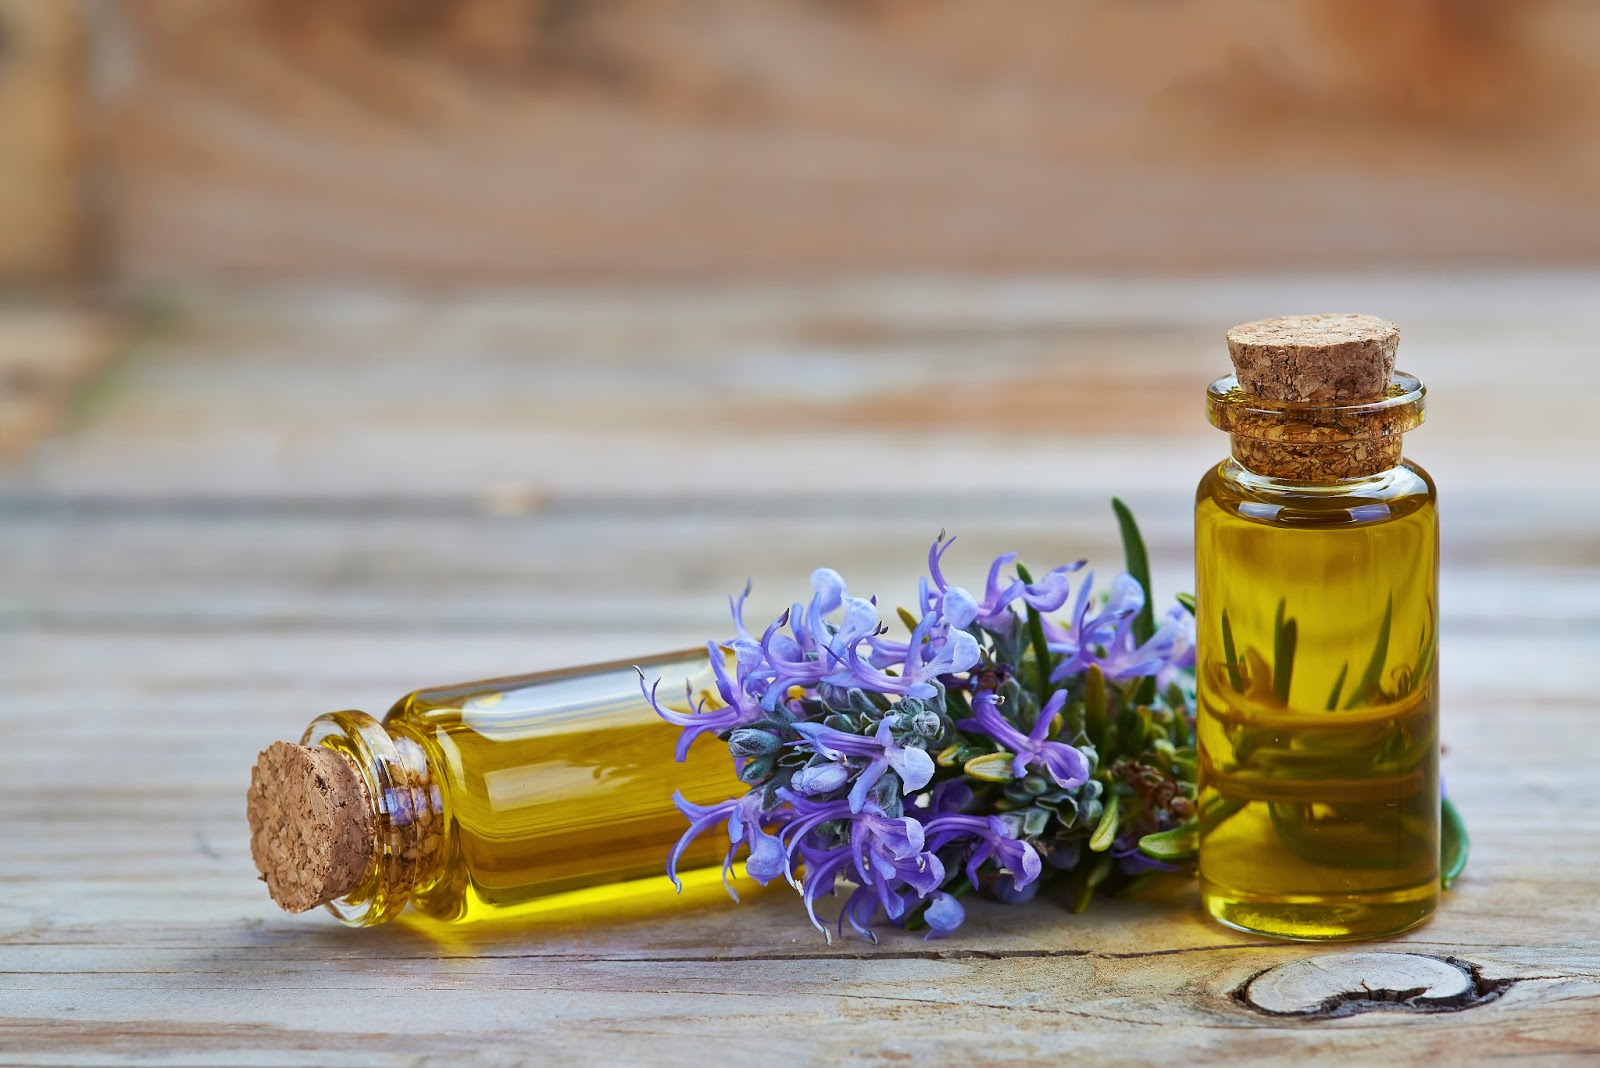 Rosemary Oil Great For Your Skin Care Routine